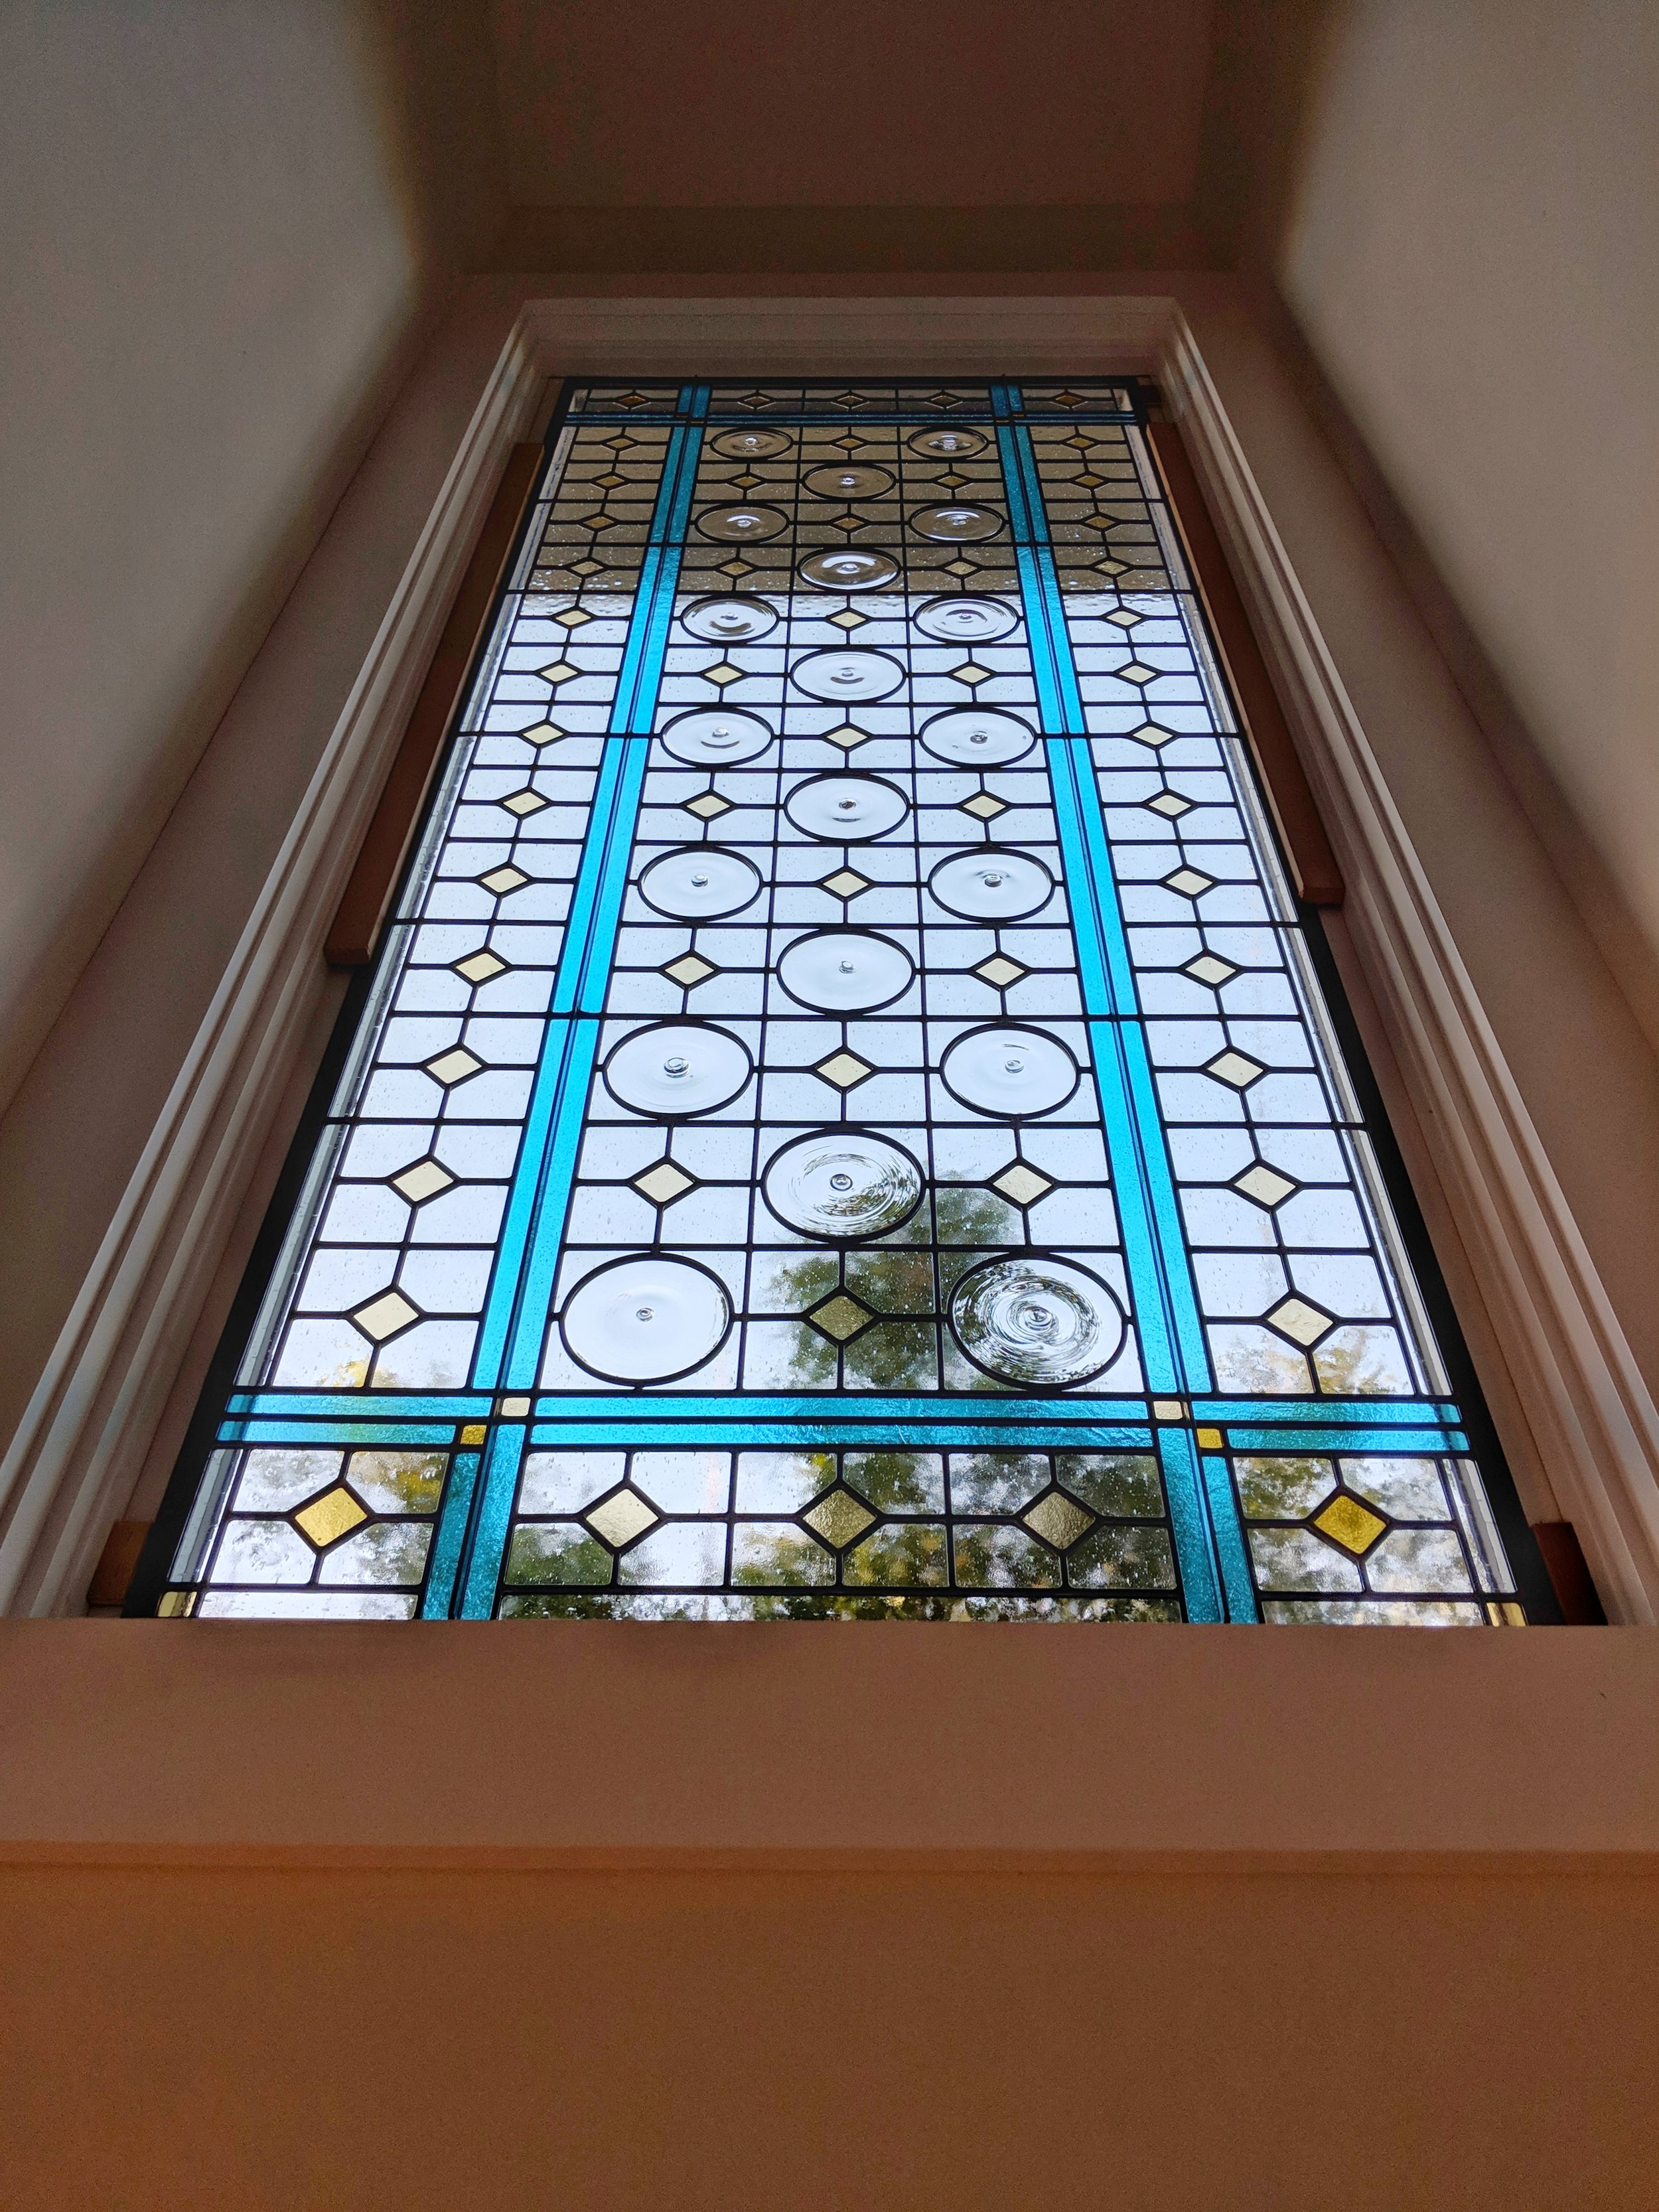 stained glass leaded glass design legacy glass studios menlo park bay area california custom design modern craftsman stairwell window mouth blown rondel pattern bendheim seedy glass cathedral glass bright.JPG